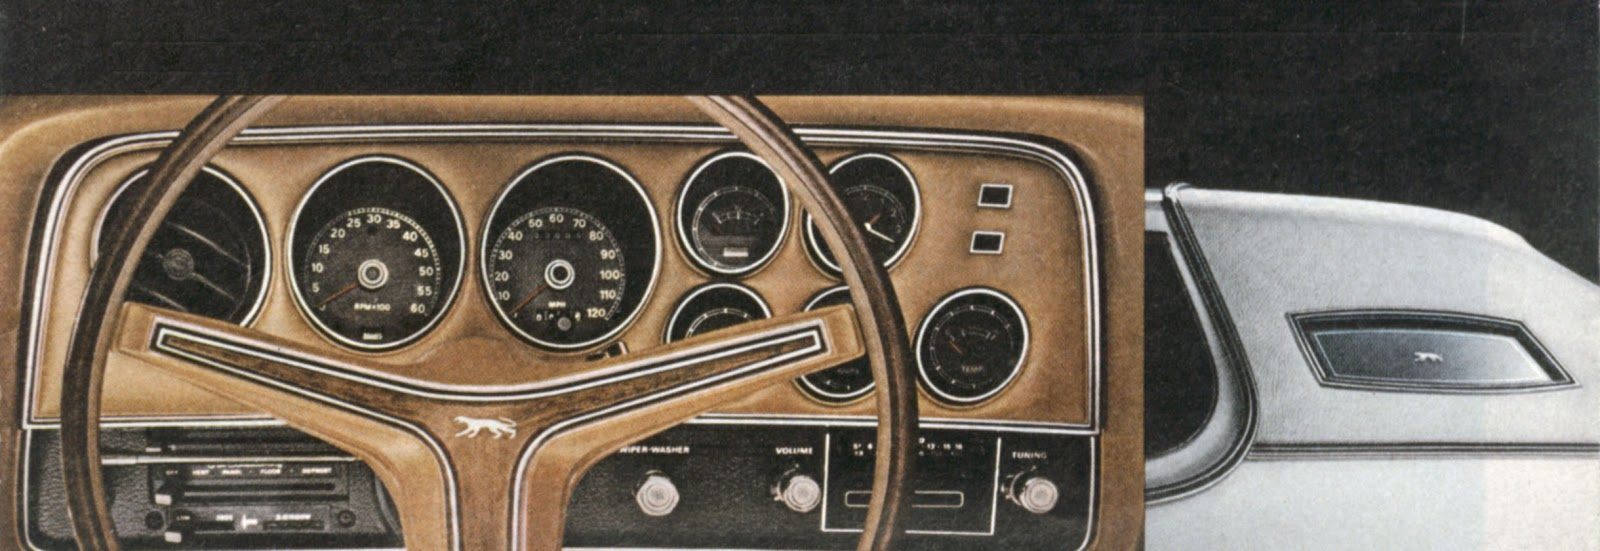 1973 1974 Mercury Cougar What A Difference Year Makes 1975 Monte Carlo Wiring Diagram Wood Grain Dash Gave Way To Leather While The Body Got Opera Windows And Hood Ornament